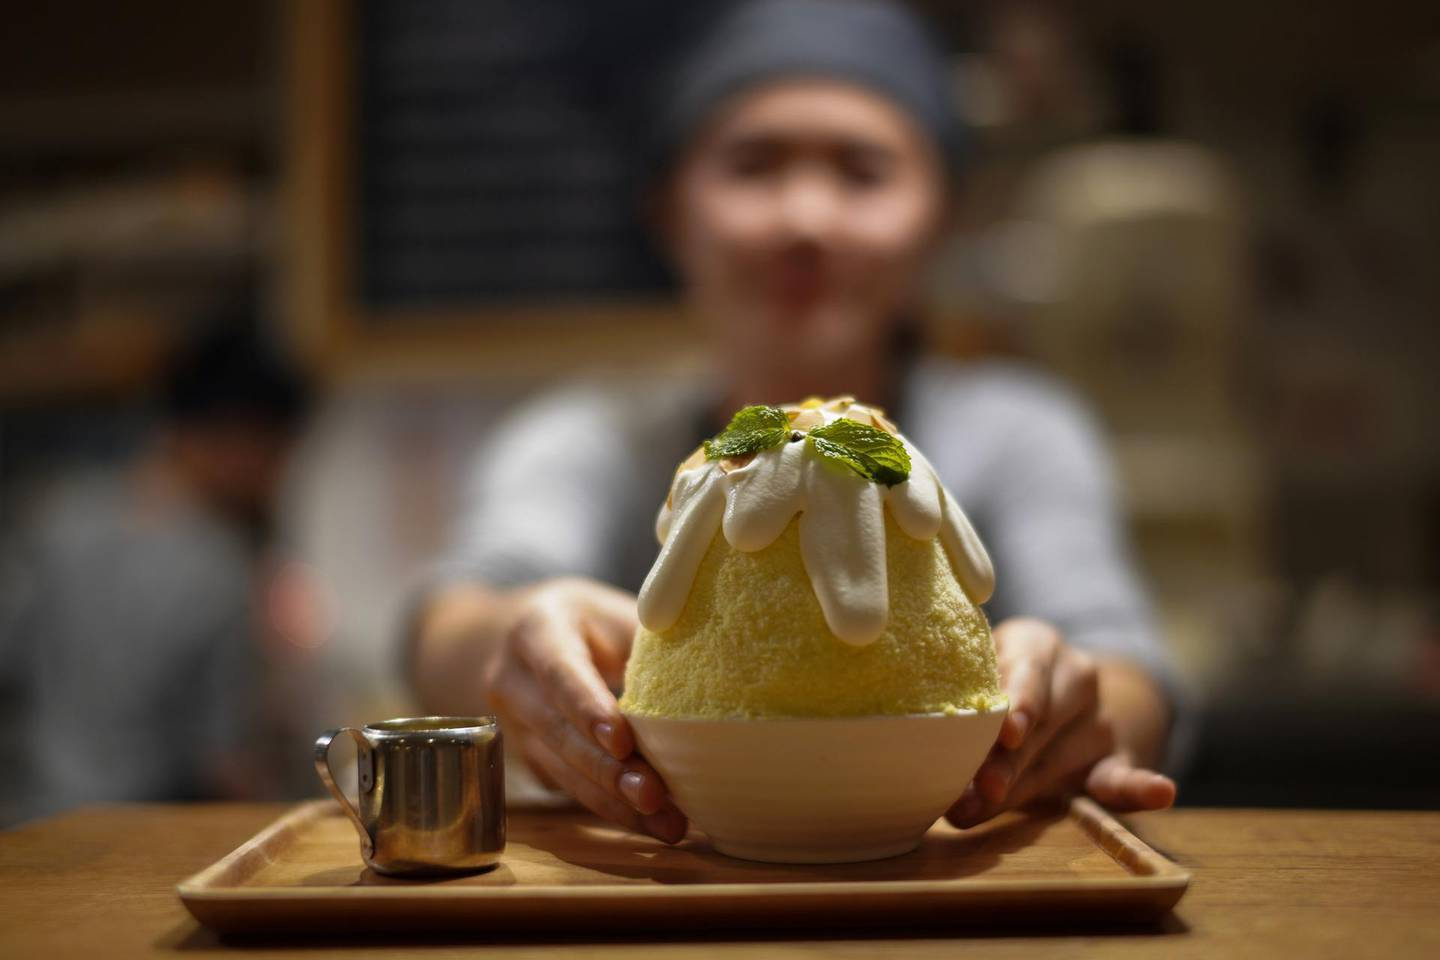 """A waitress serves a """"Durian Sticky rice kakigori"""" at an After You dessert cafe at a department store in Bangkok, Thailand, May 3, 2018. Picture taken May 3, 2018. REUTERS/Athit Perawongmetha"""